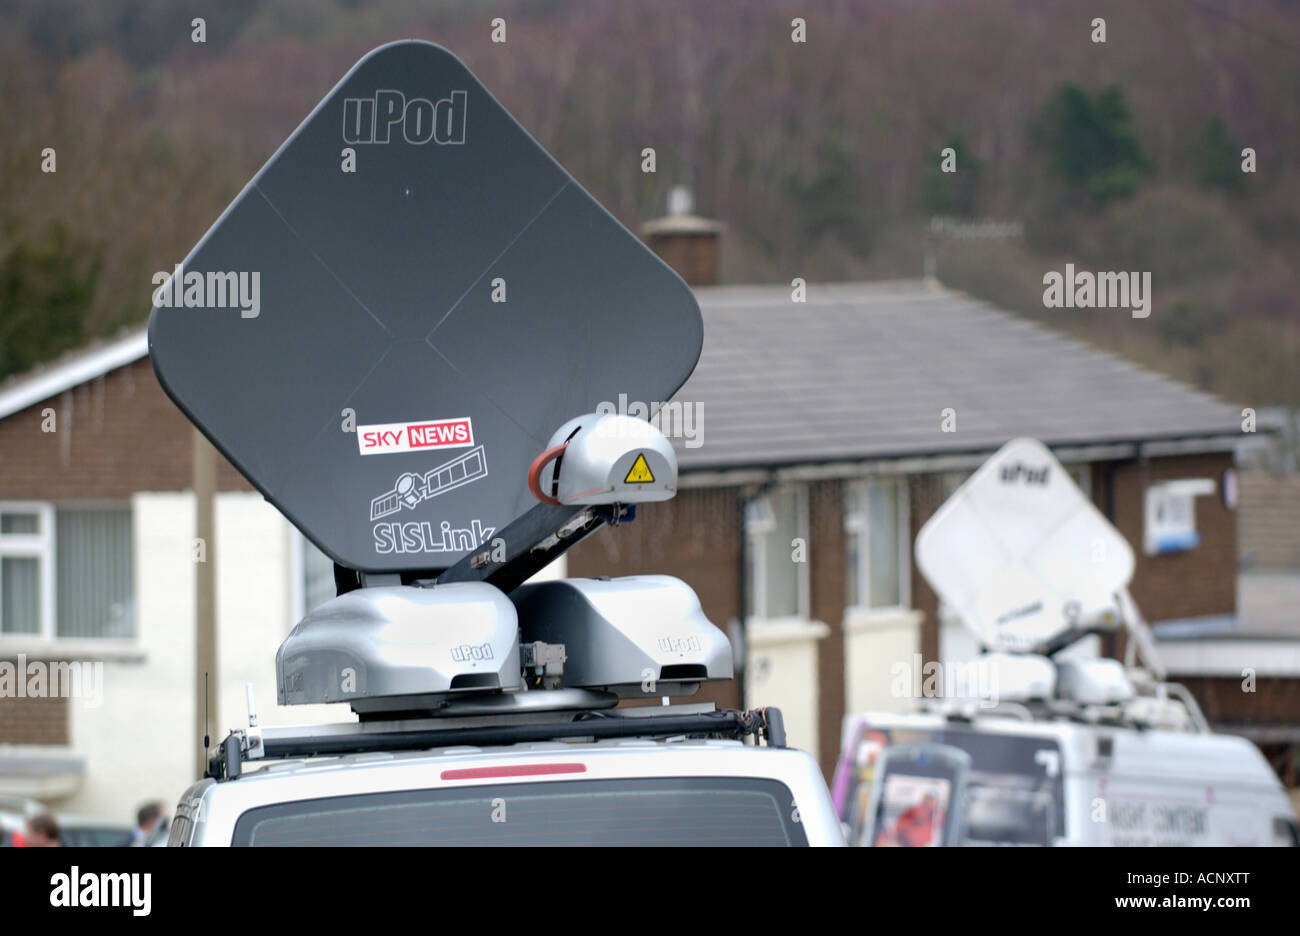 Tv News Van Stock Photos & Tv News Van Stock Images - Alamy